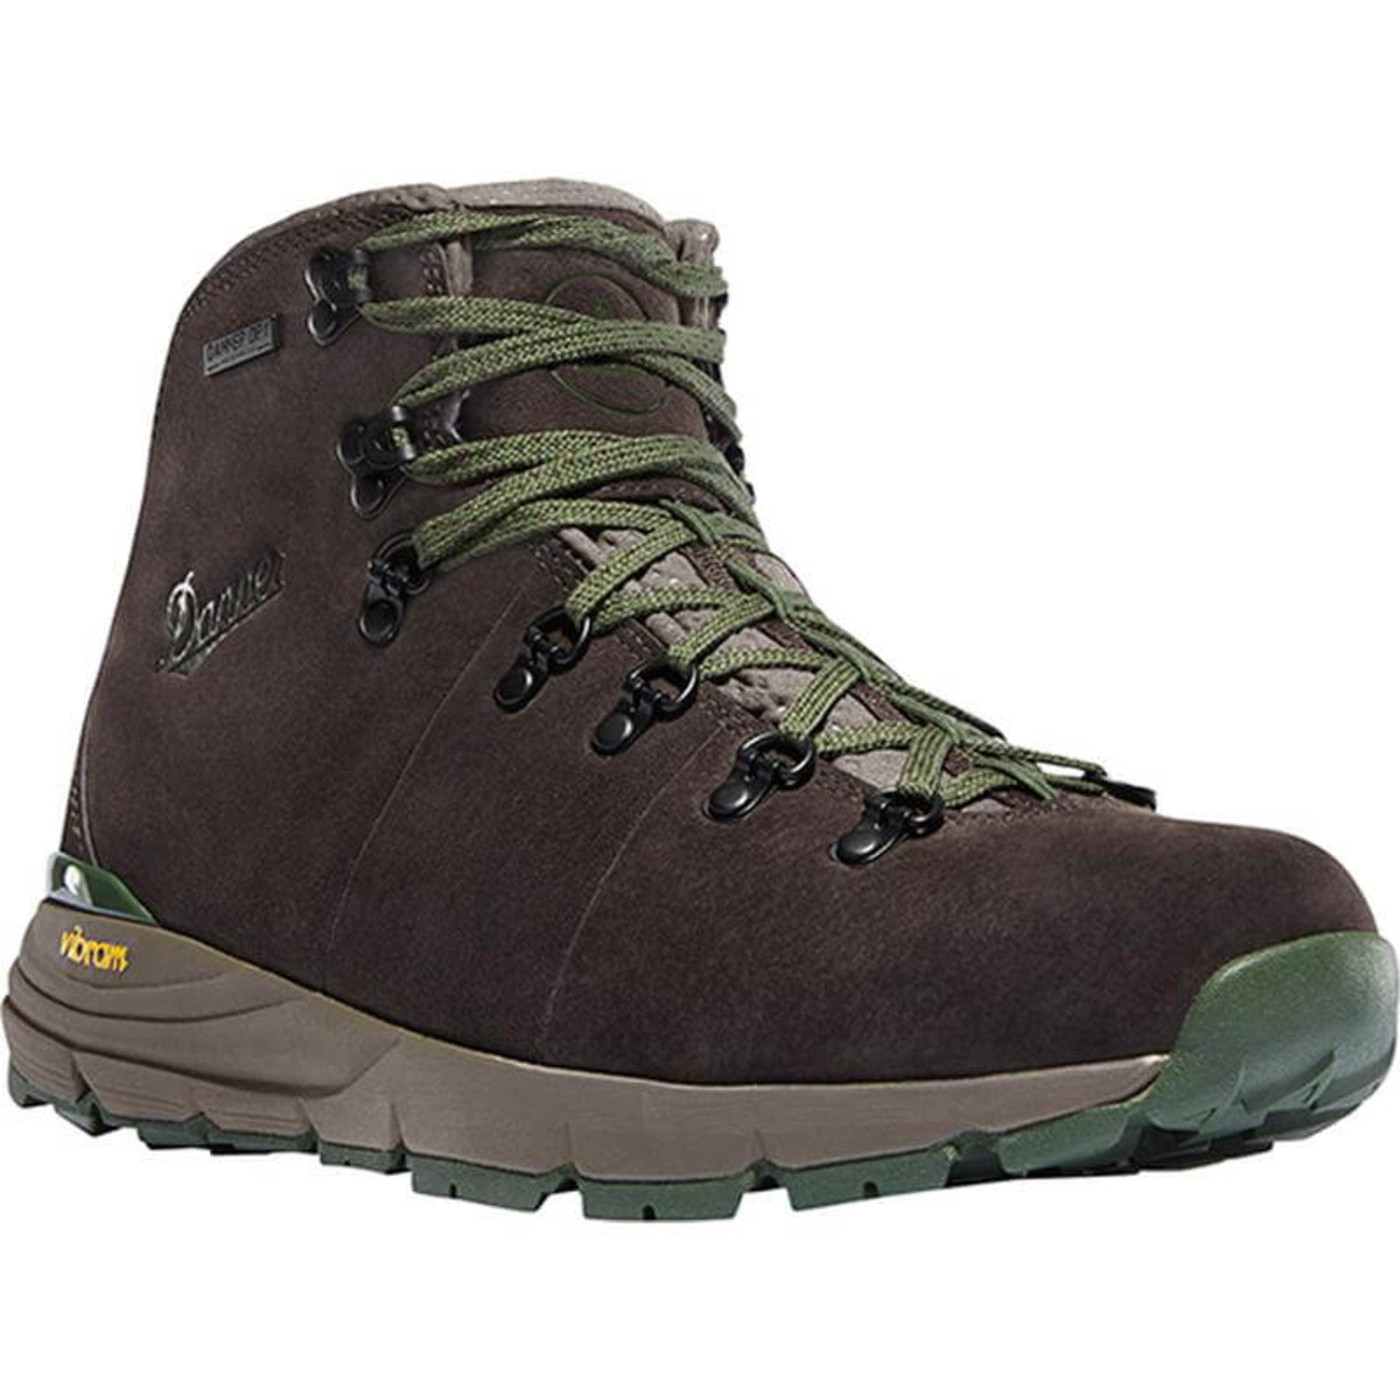 "Danner Mens Mountain 600 4.5"" Dark Brown/Green"